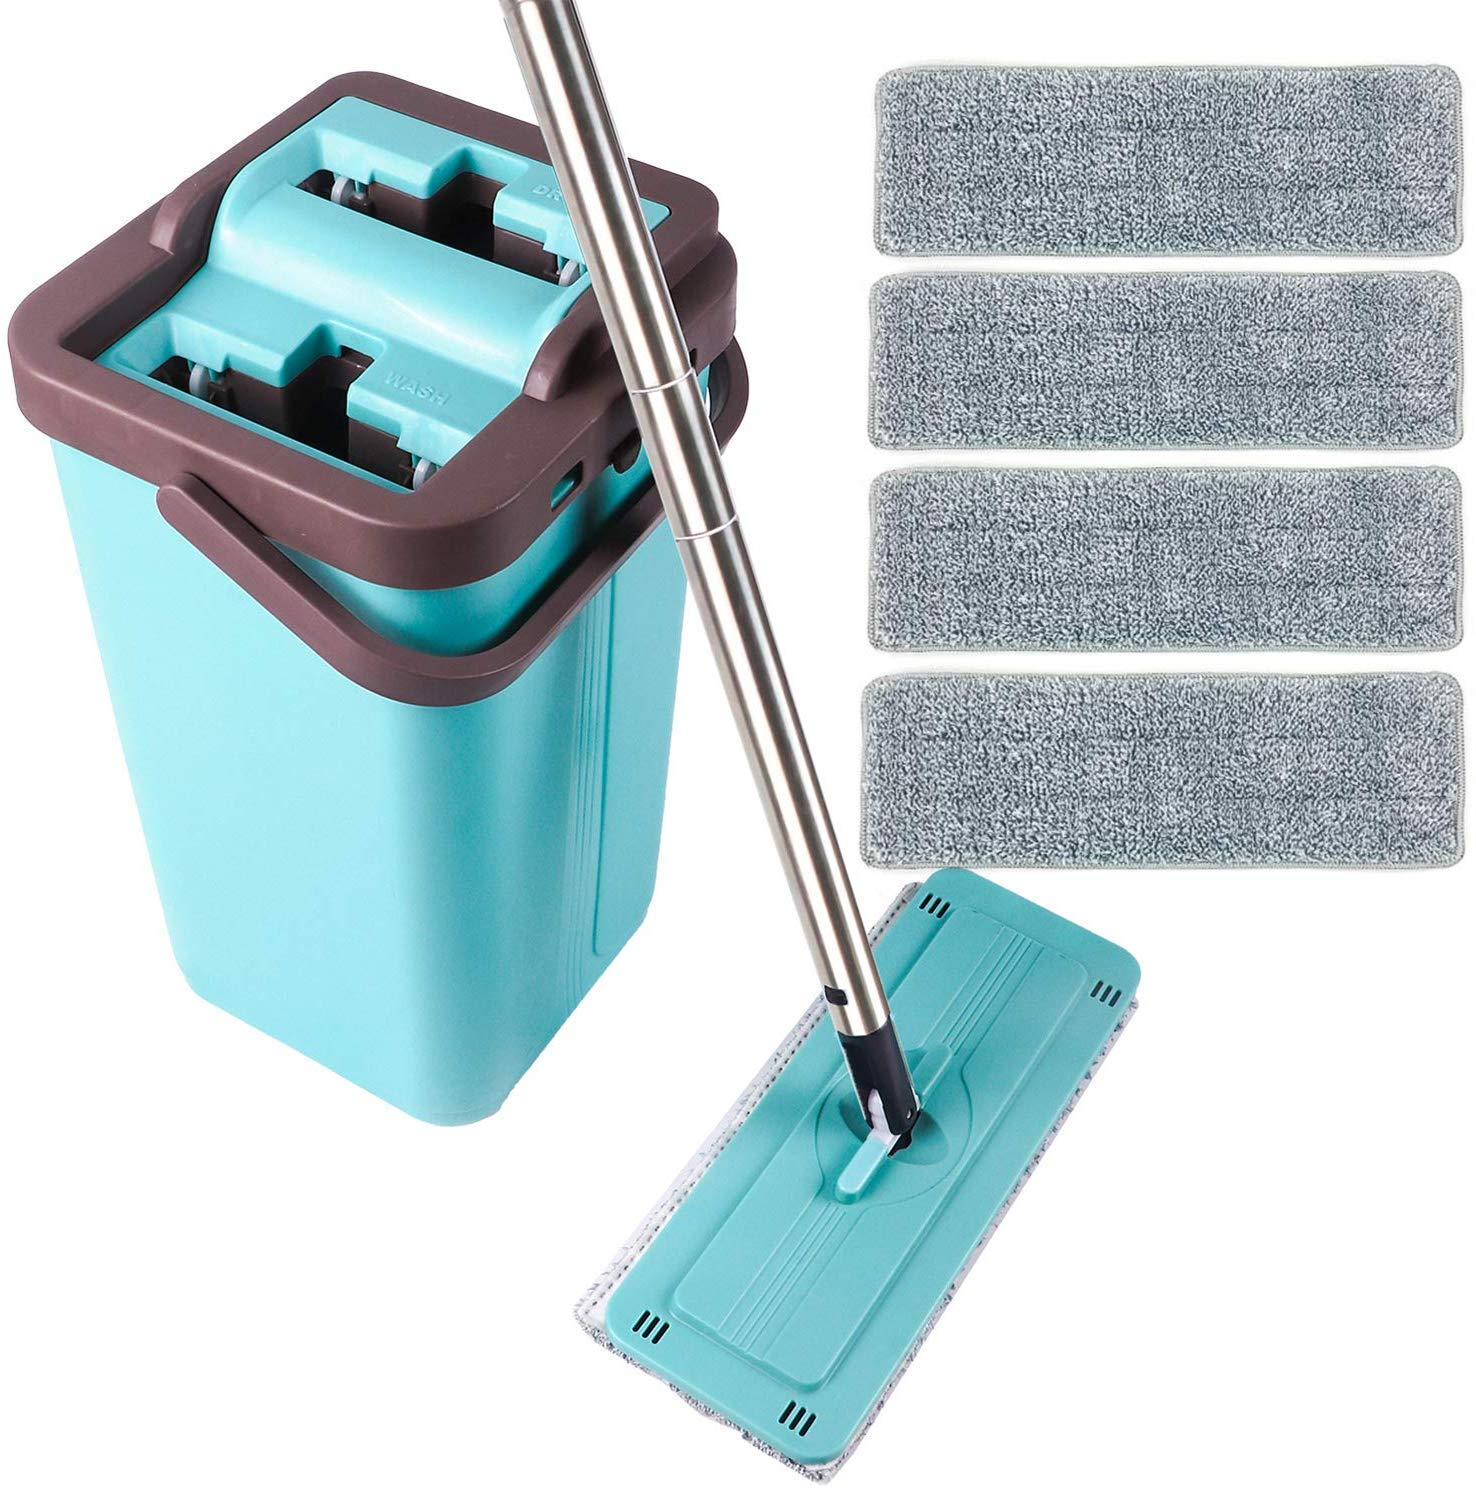 Squeeze Flat Mop 1 Bucket Wet Dry Floor Cleaning Hand Free 4 Reusable Microfiber Mop Pads for Home Kitchen Floor Cleaning Stainless Steel Handle